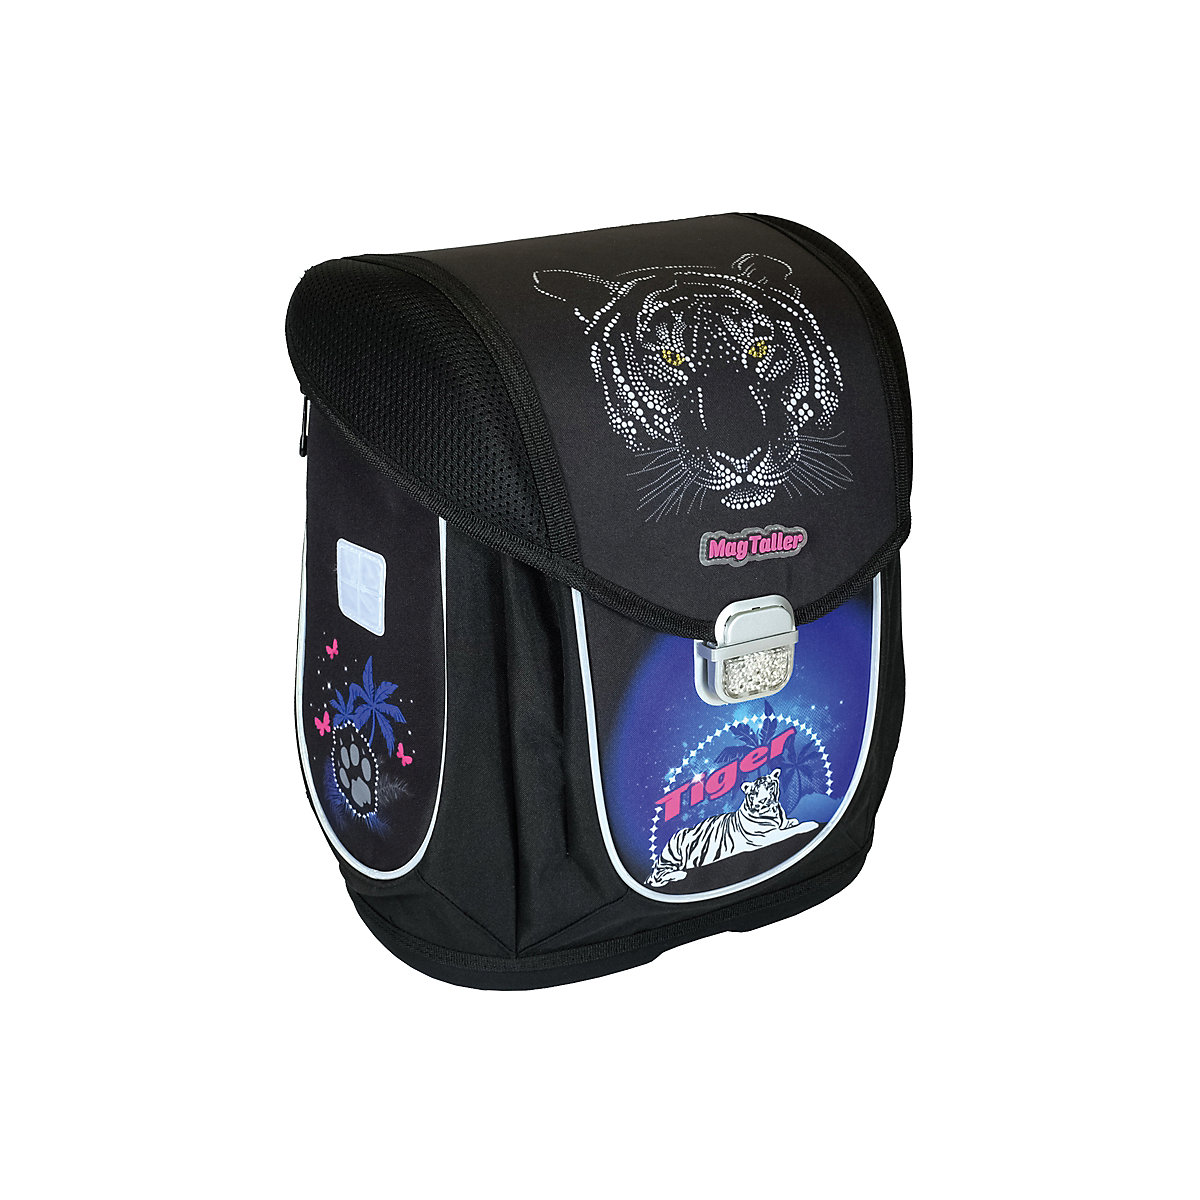 School Bags MAGTALLER 8316056 Schoolbag Backpack Orthopedic Bag For Boy And Girl Animals Flowers